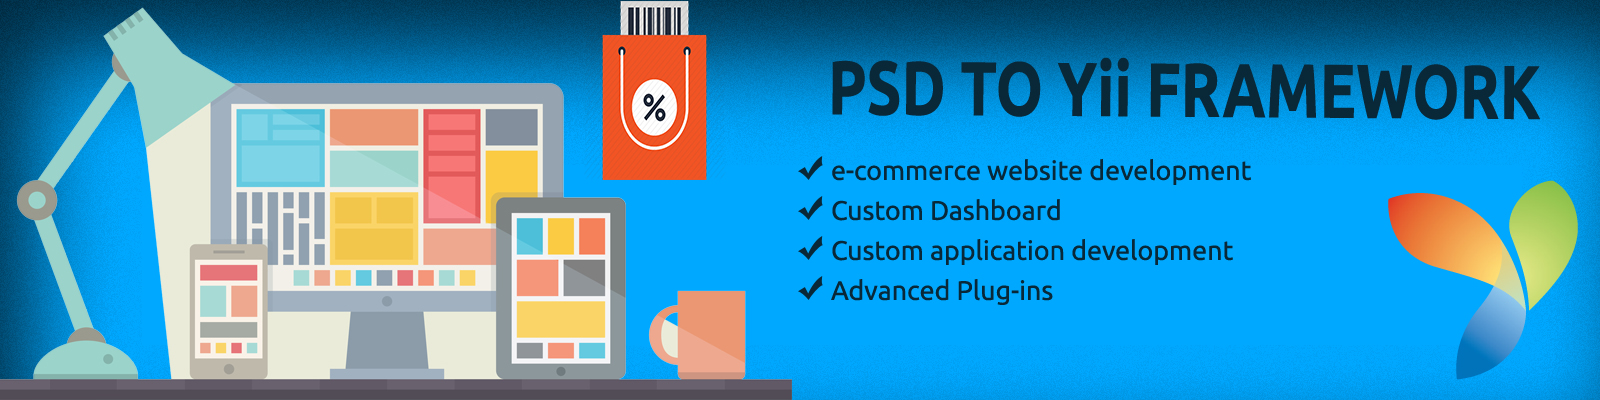 psd to yii conversion services